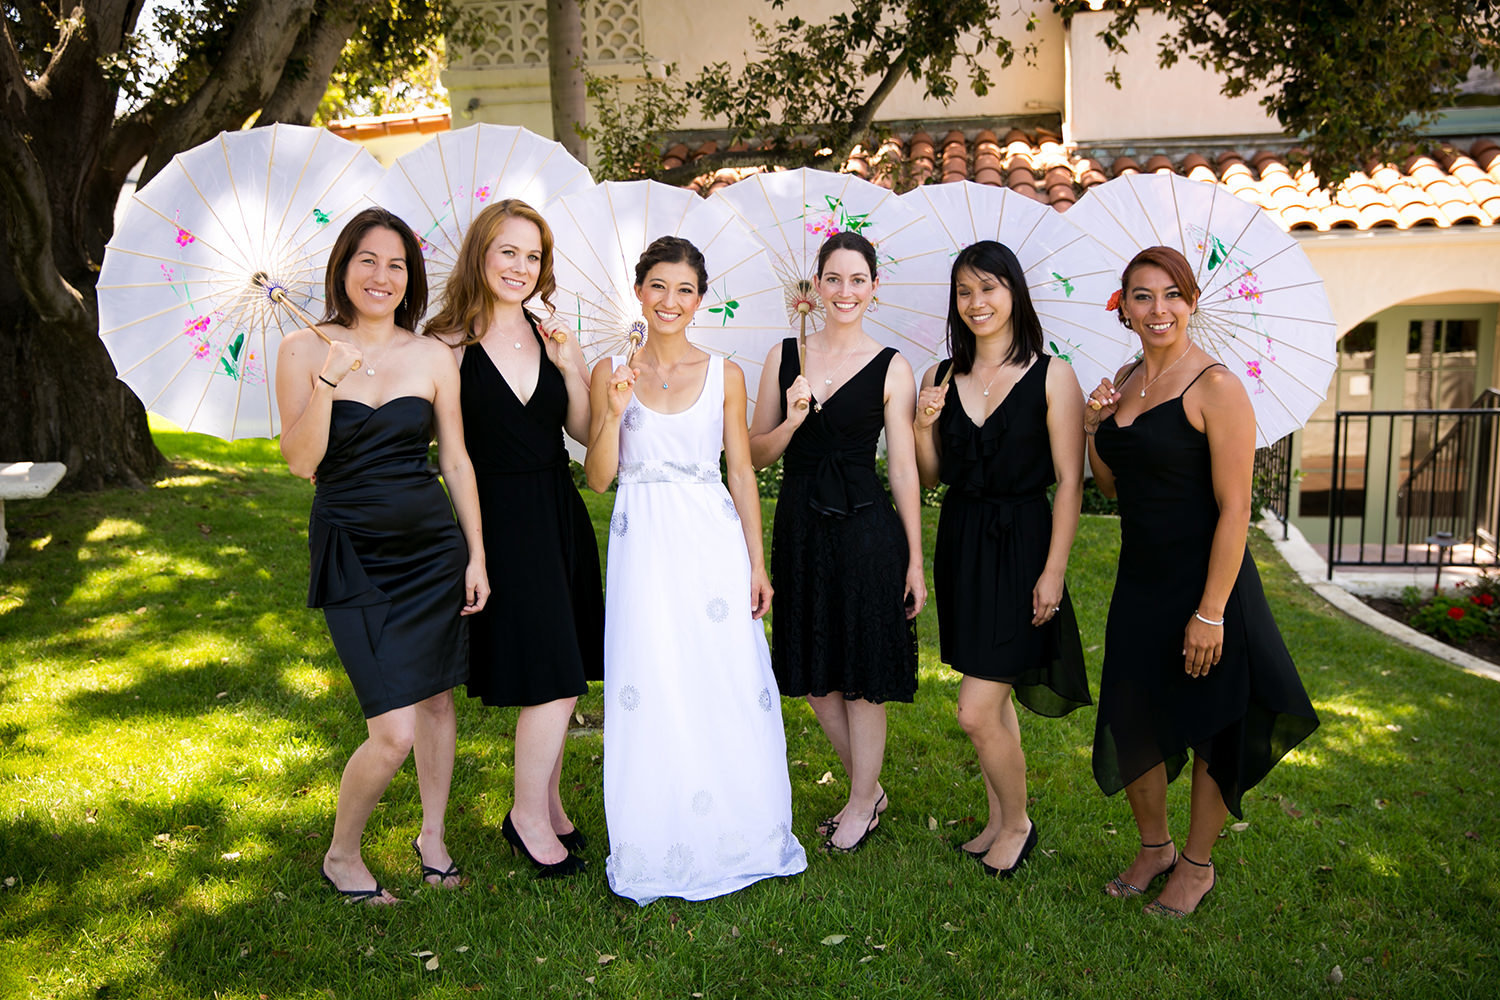 bride with bridesmaids and black umbrellas